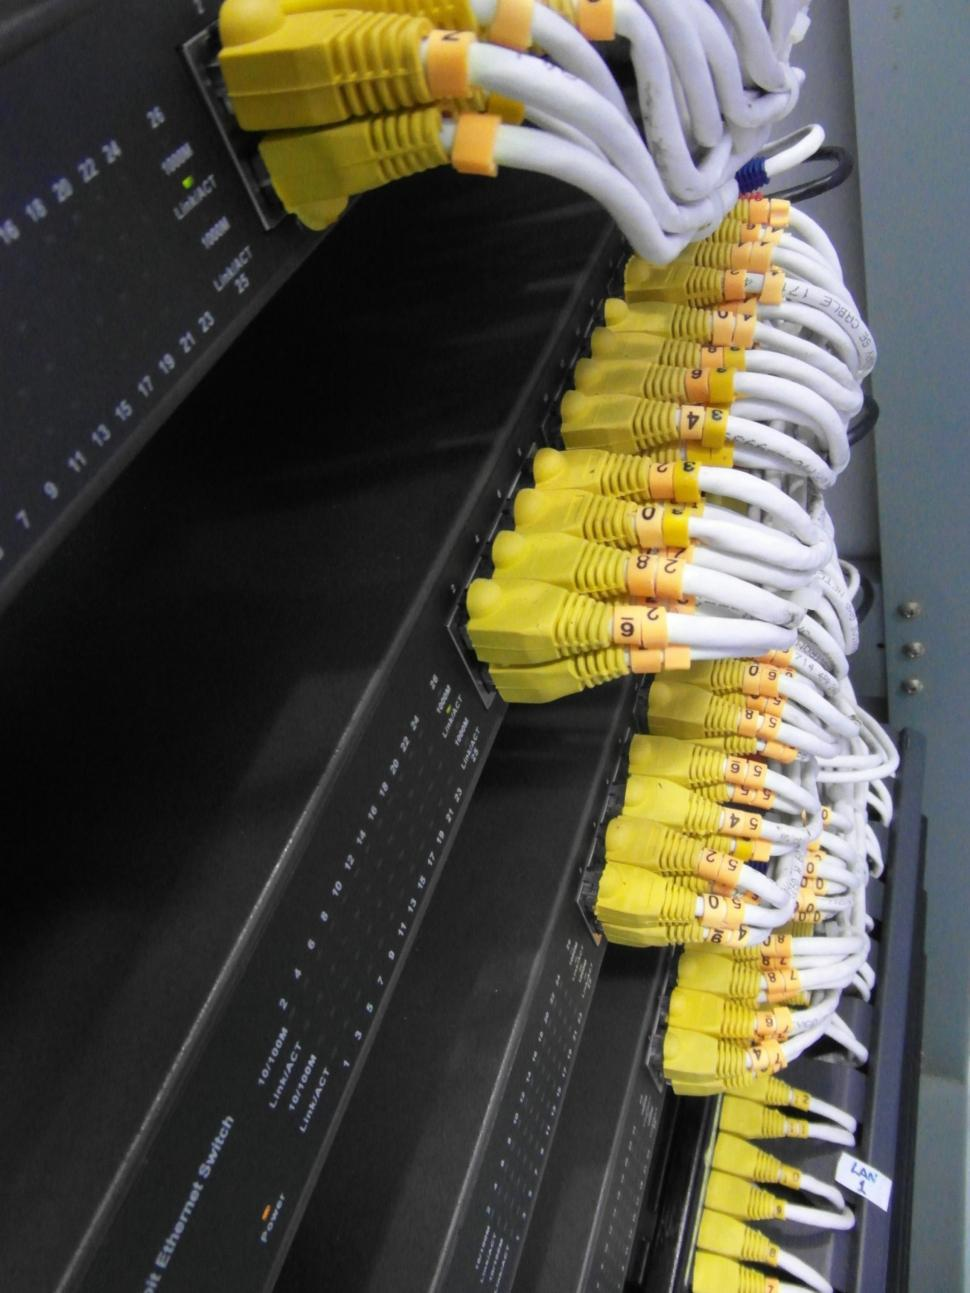 Download Free Stock Photo of Server Network Cables